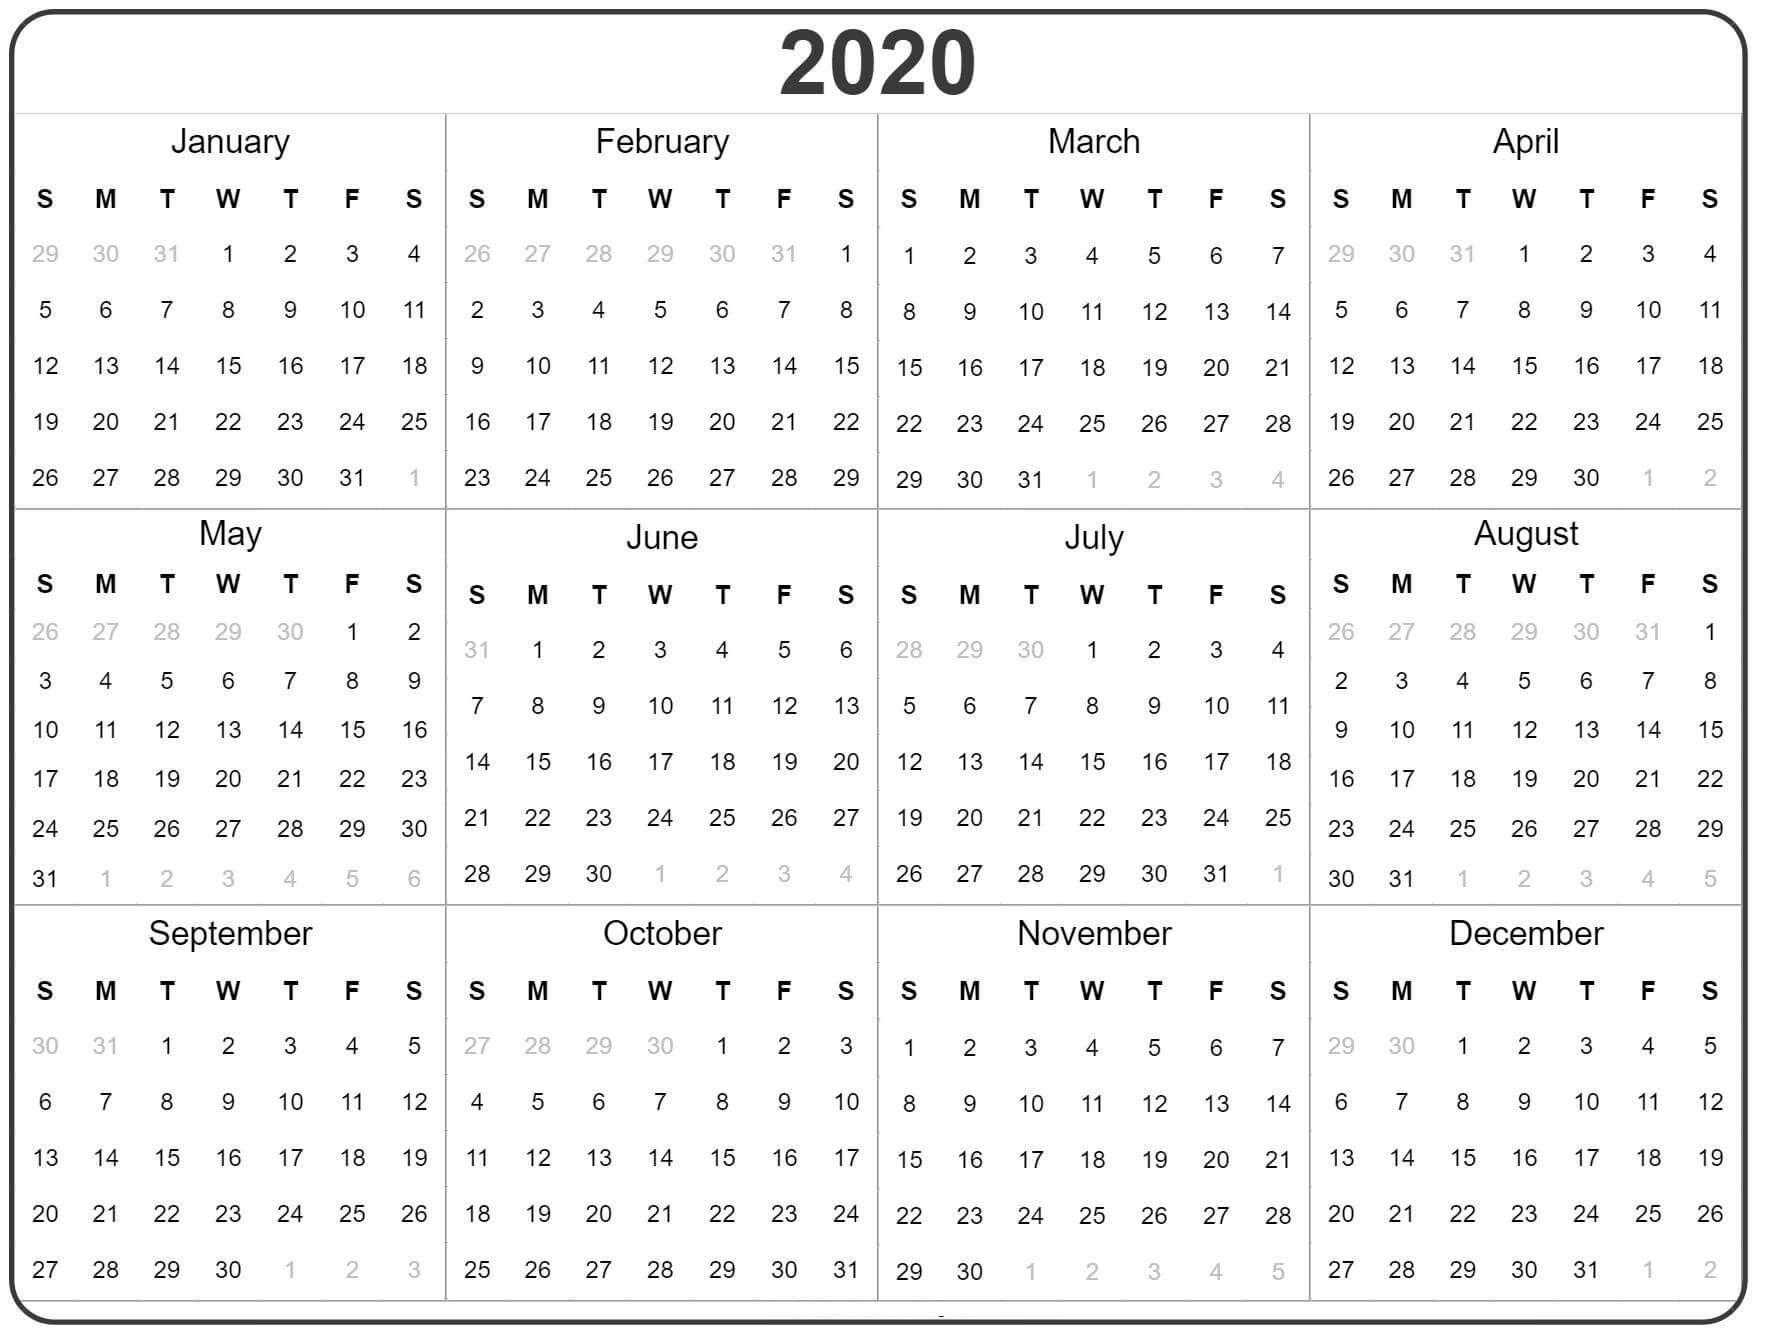 Free Yearly Calendar 2020 With Notes - 2019 Calendars For